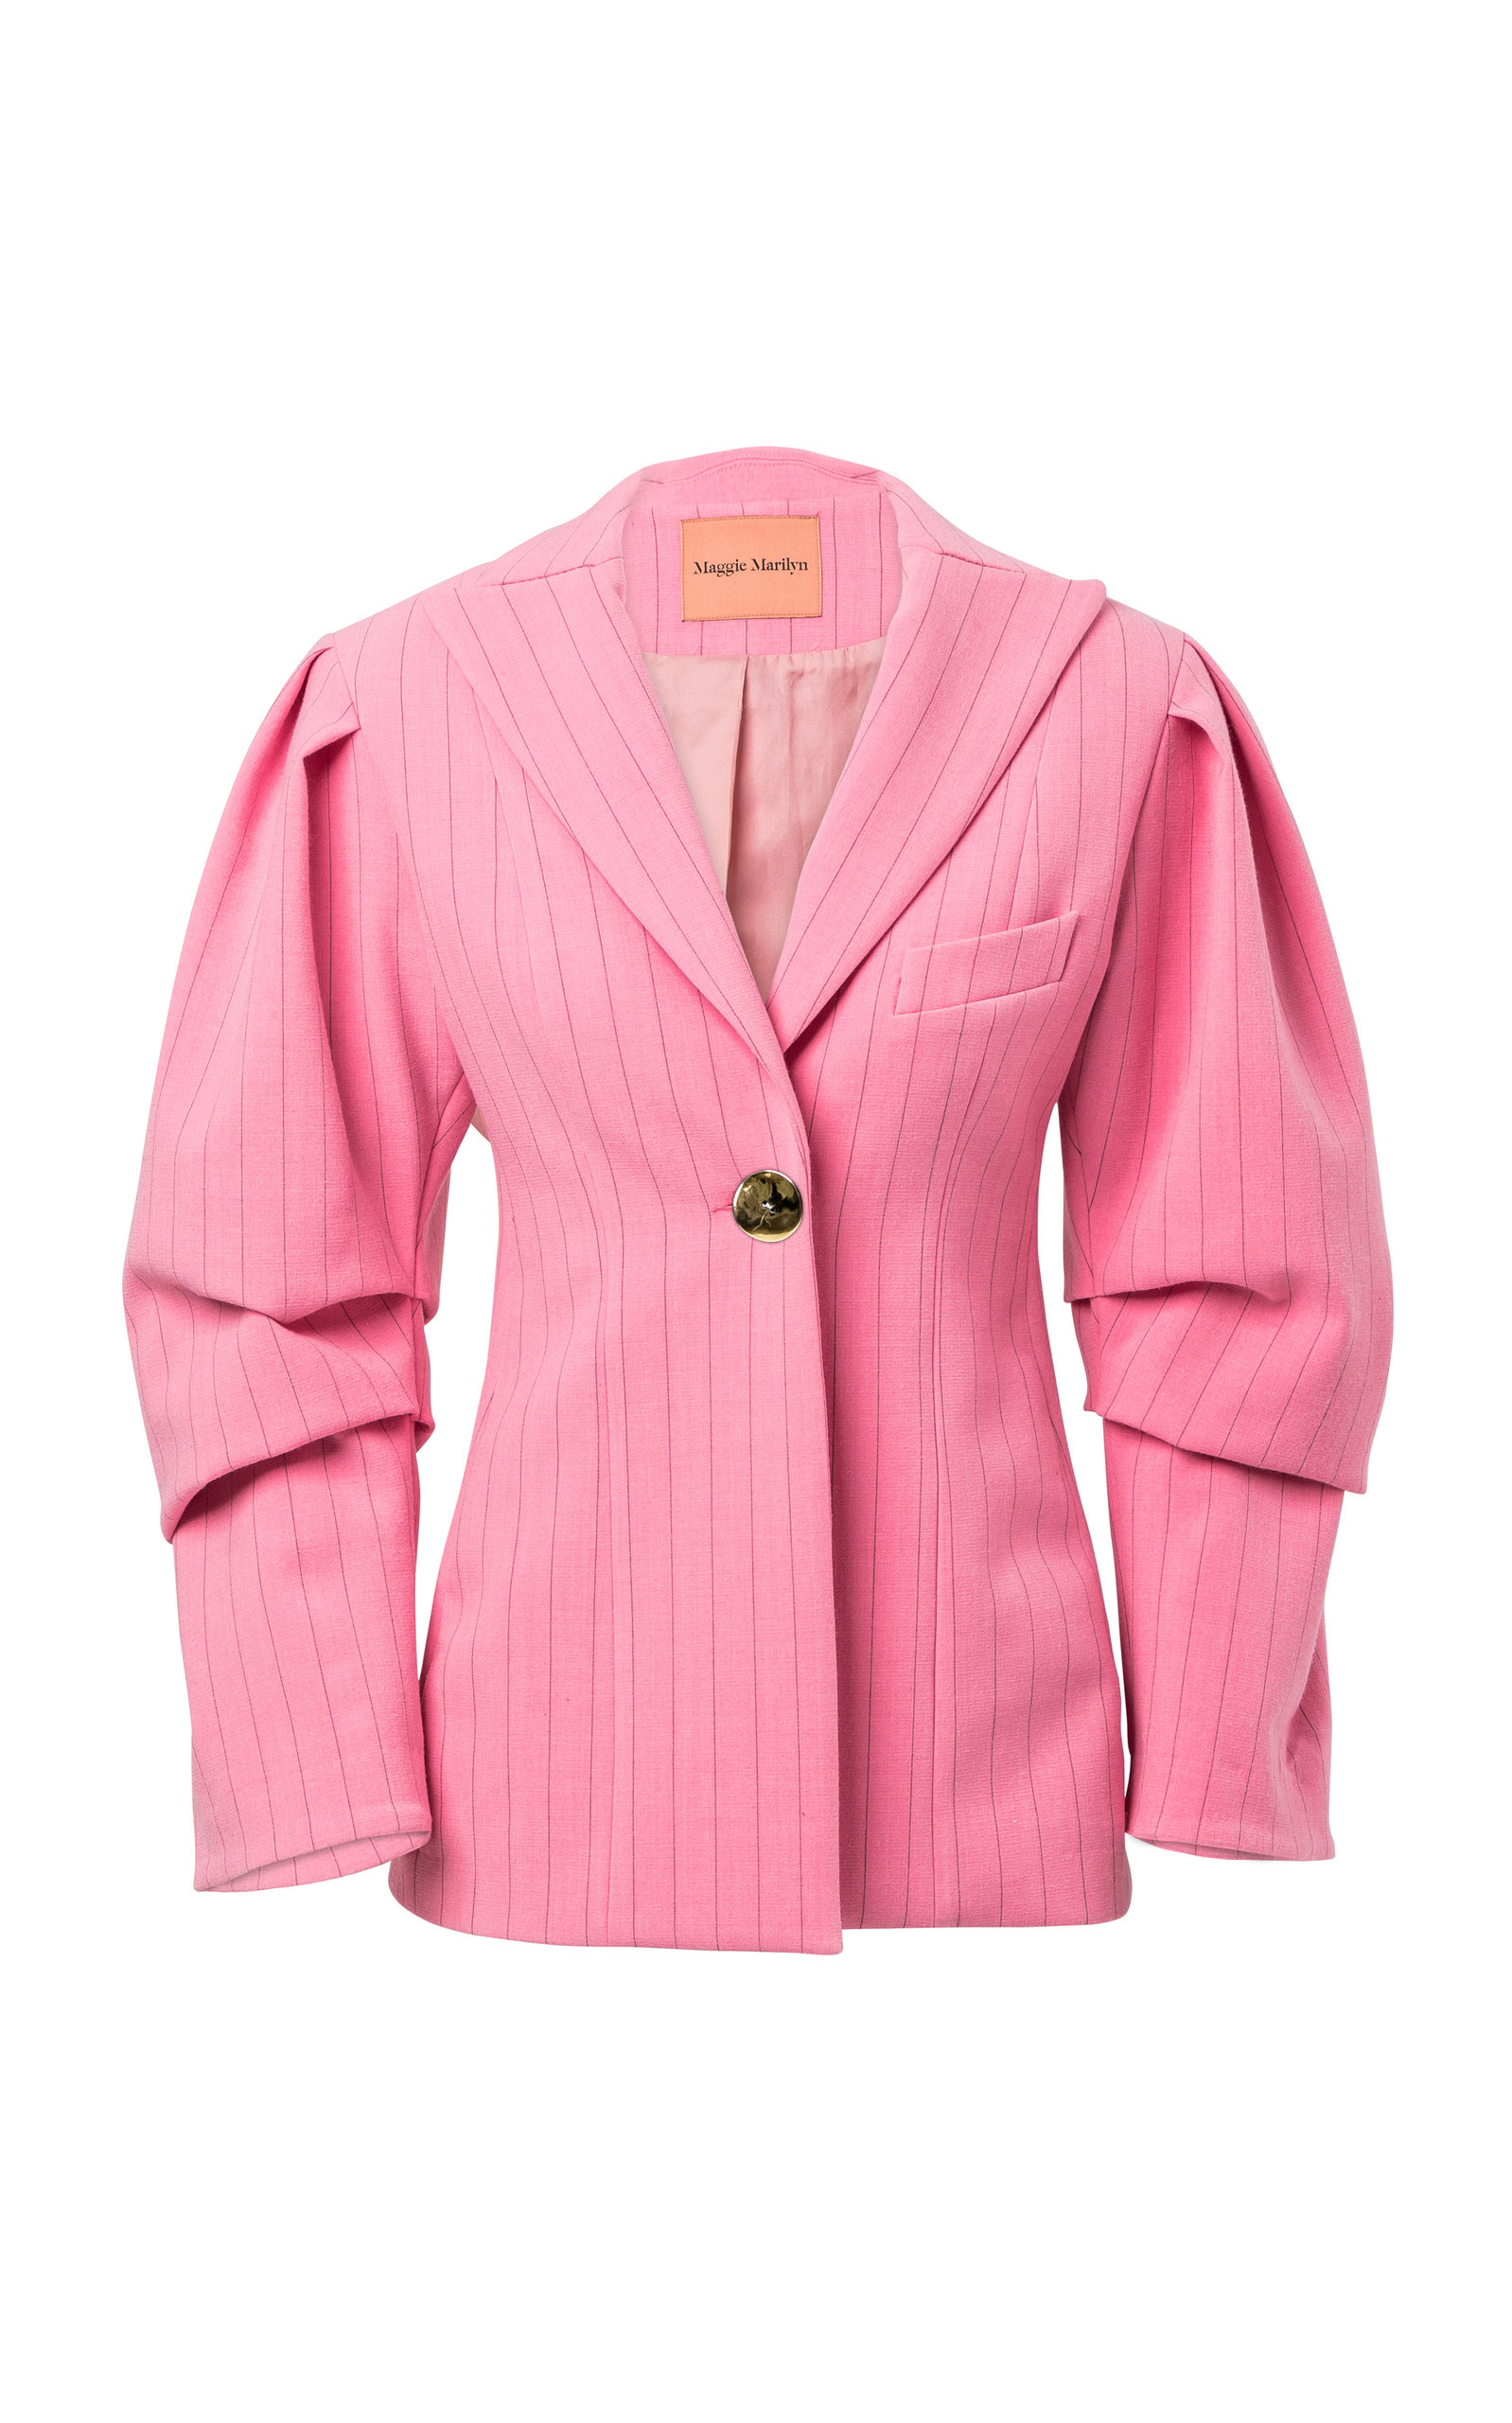 Maggie Marilyn YOU LIFT ME HIGHER PINSTRIPE BLAZER